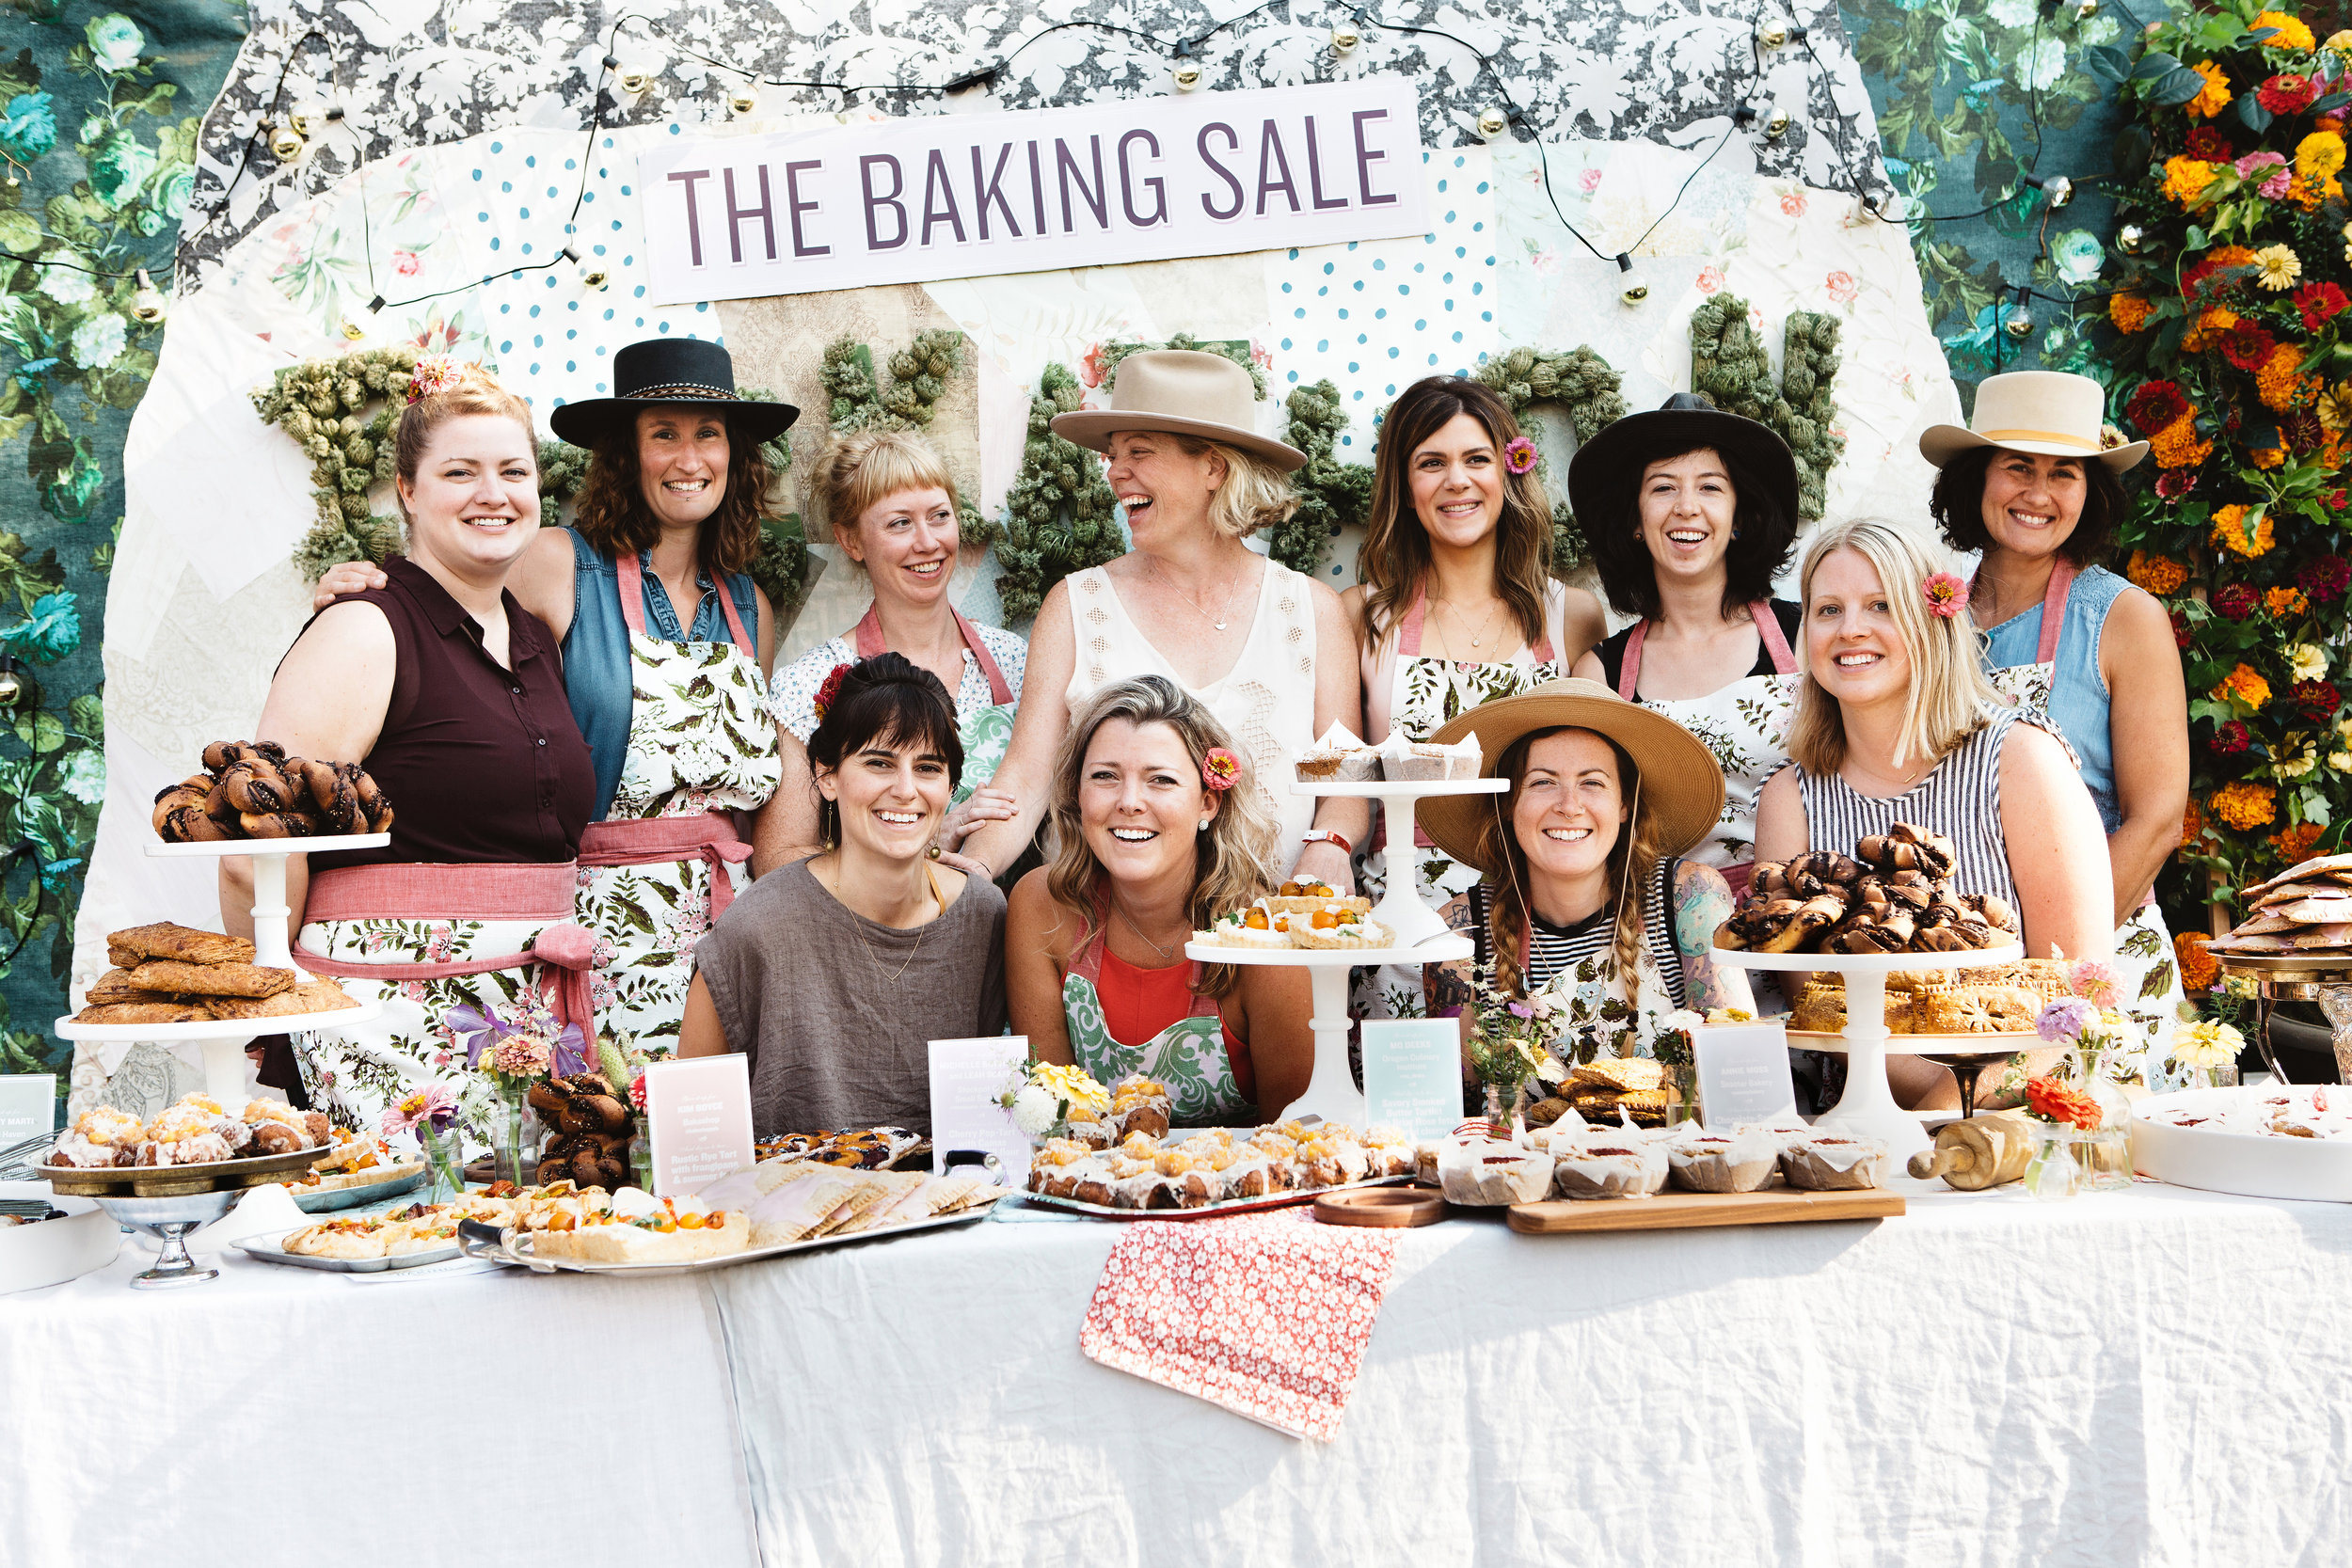 The Baking Sale